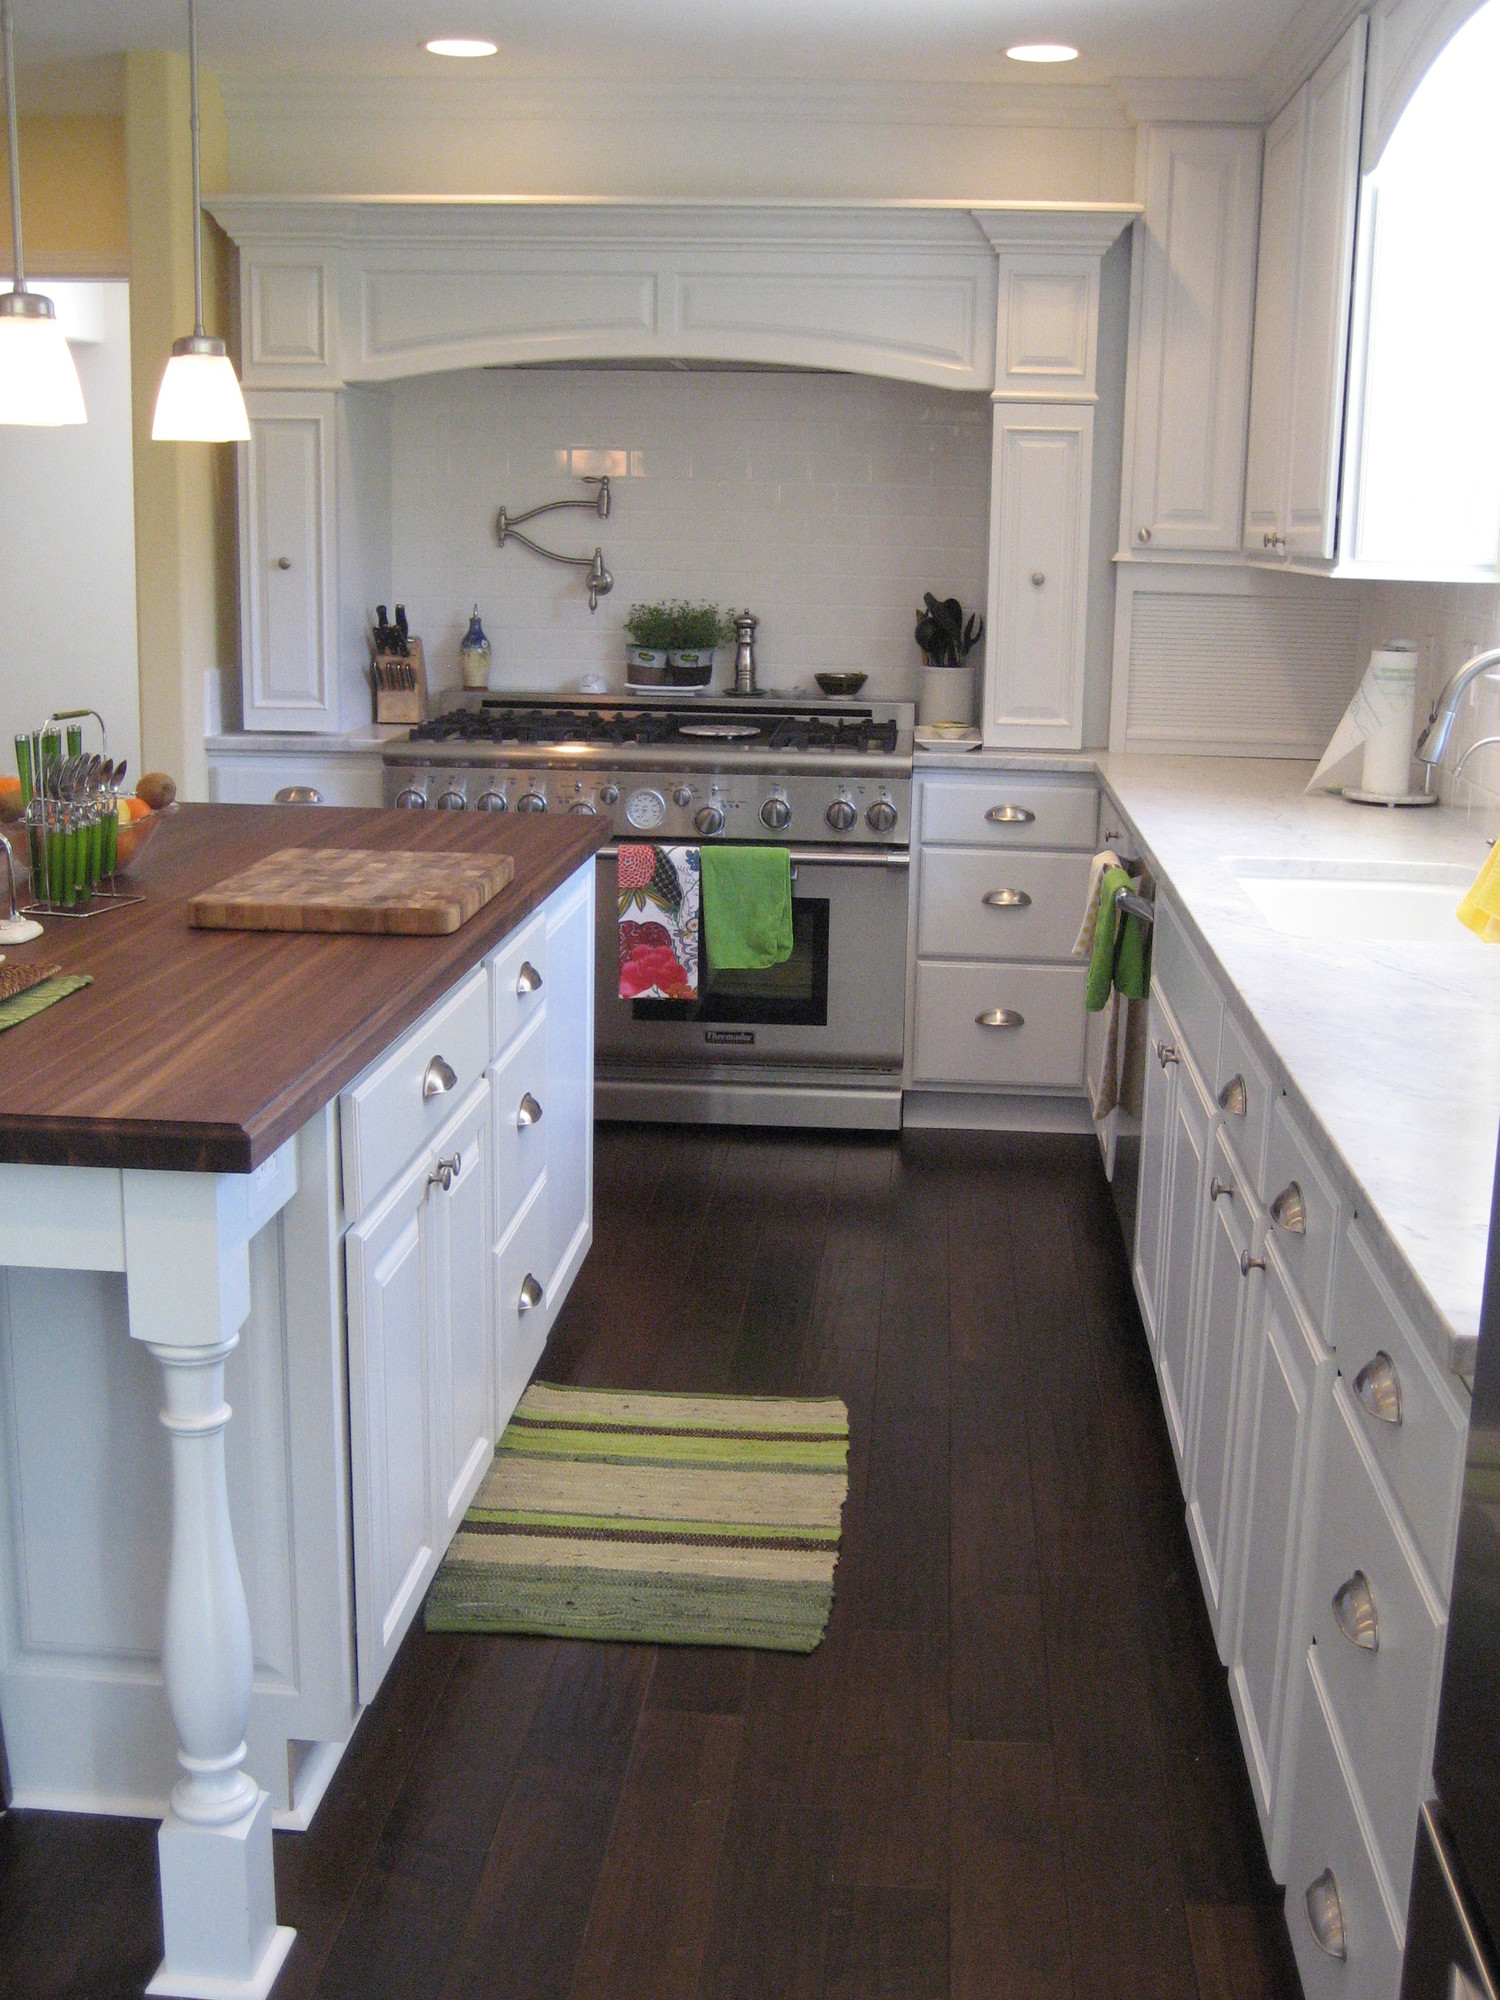 Carter-New-Life-Bath-And-Kitchen-Orcutt-2.jpg